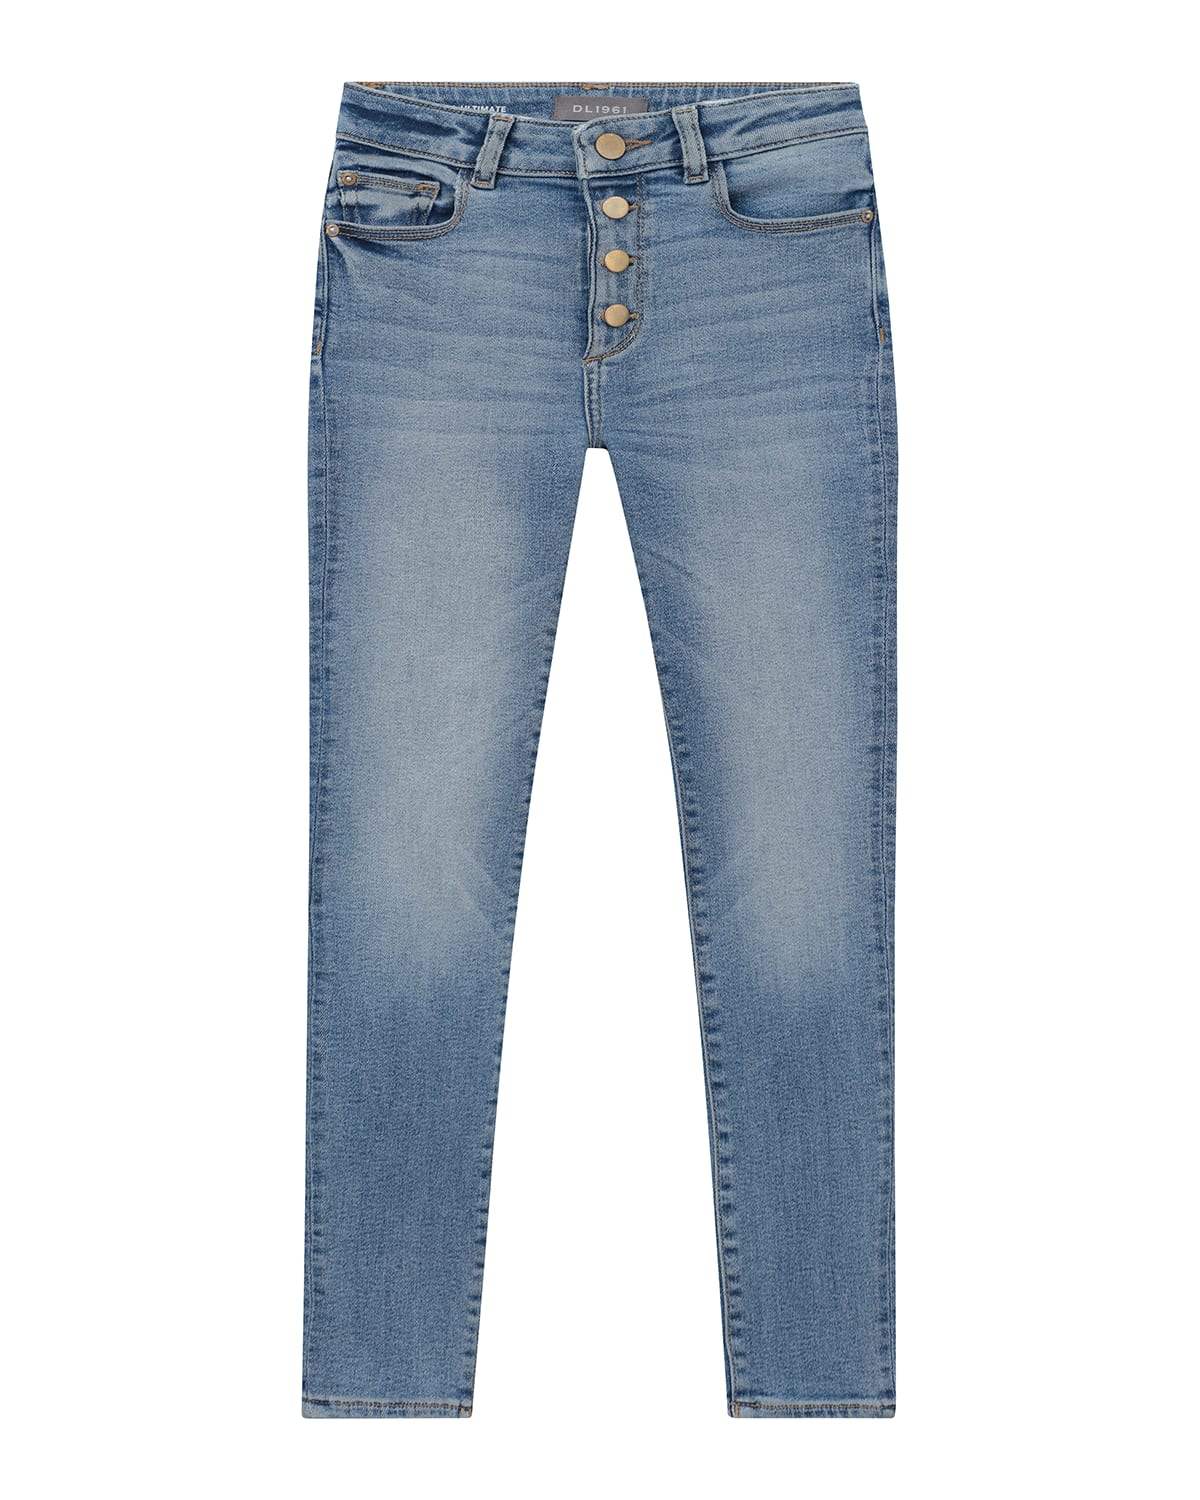 Girl's Chloe High-Rise Button Fly Skinny Jeans